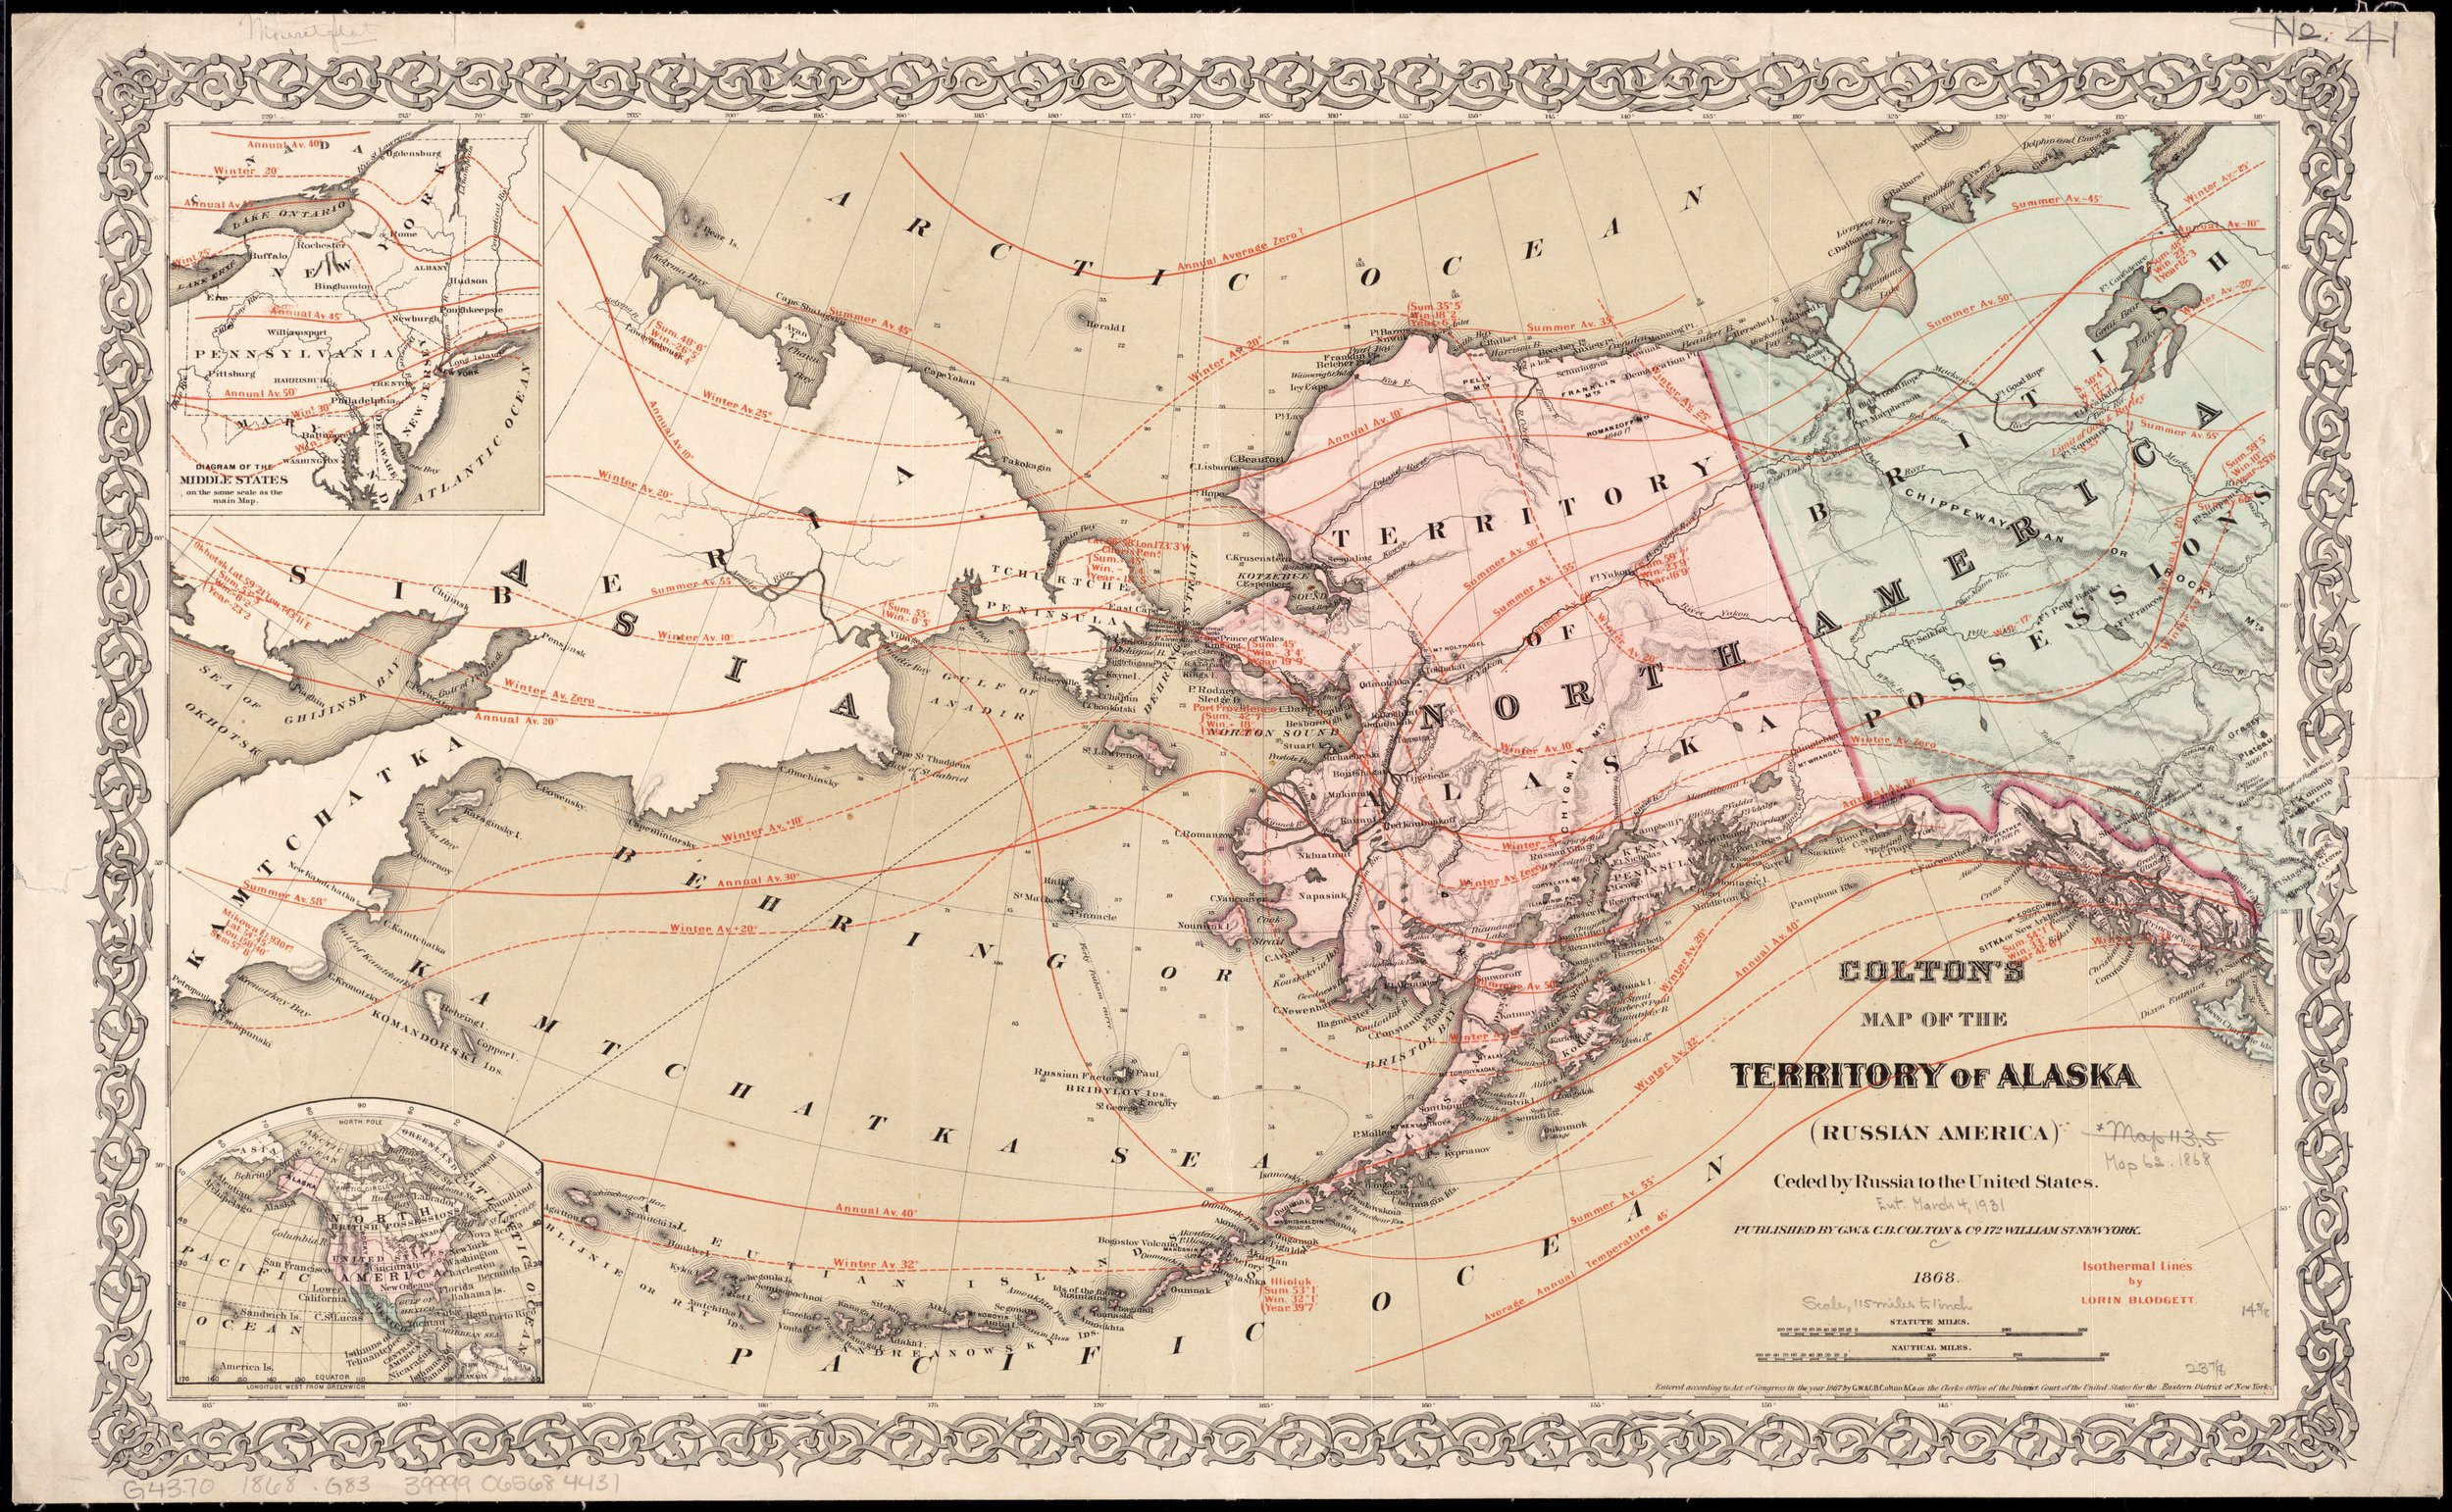 Colton's map of the territory of Alaska : (Russian America) ceded by Russia to the United States